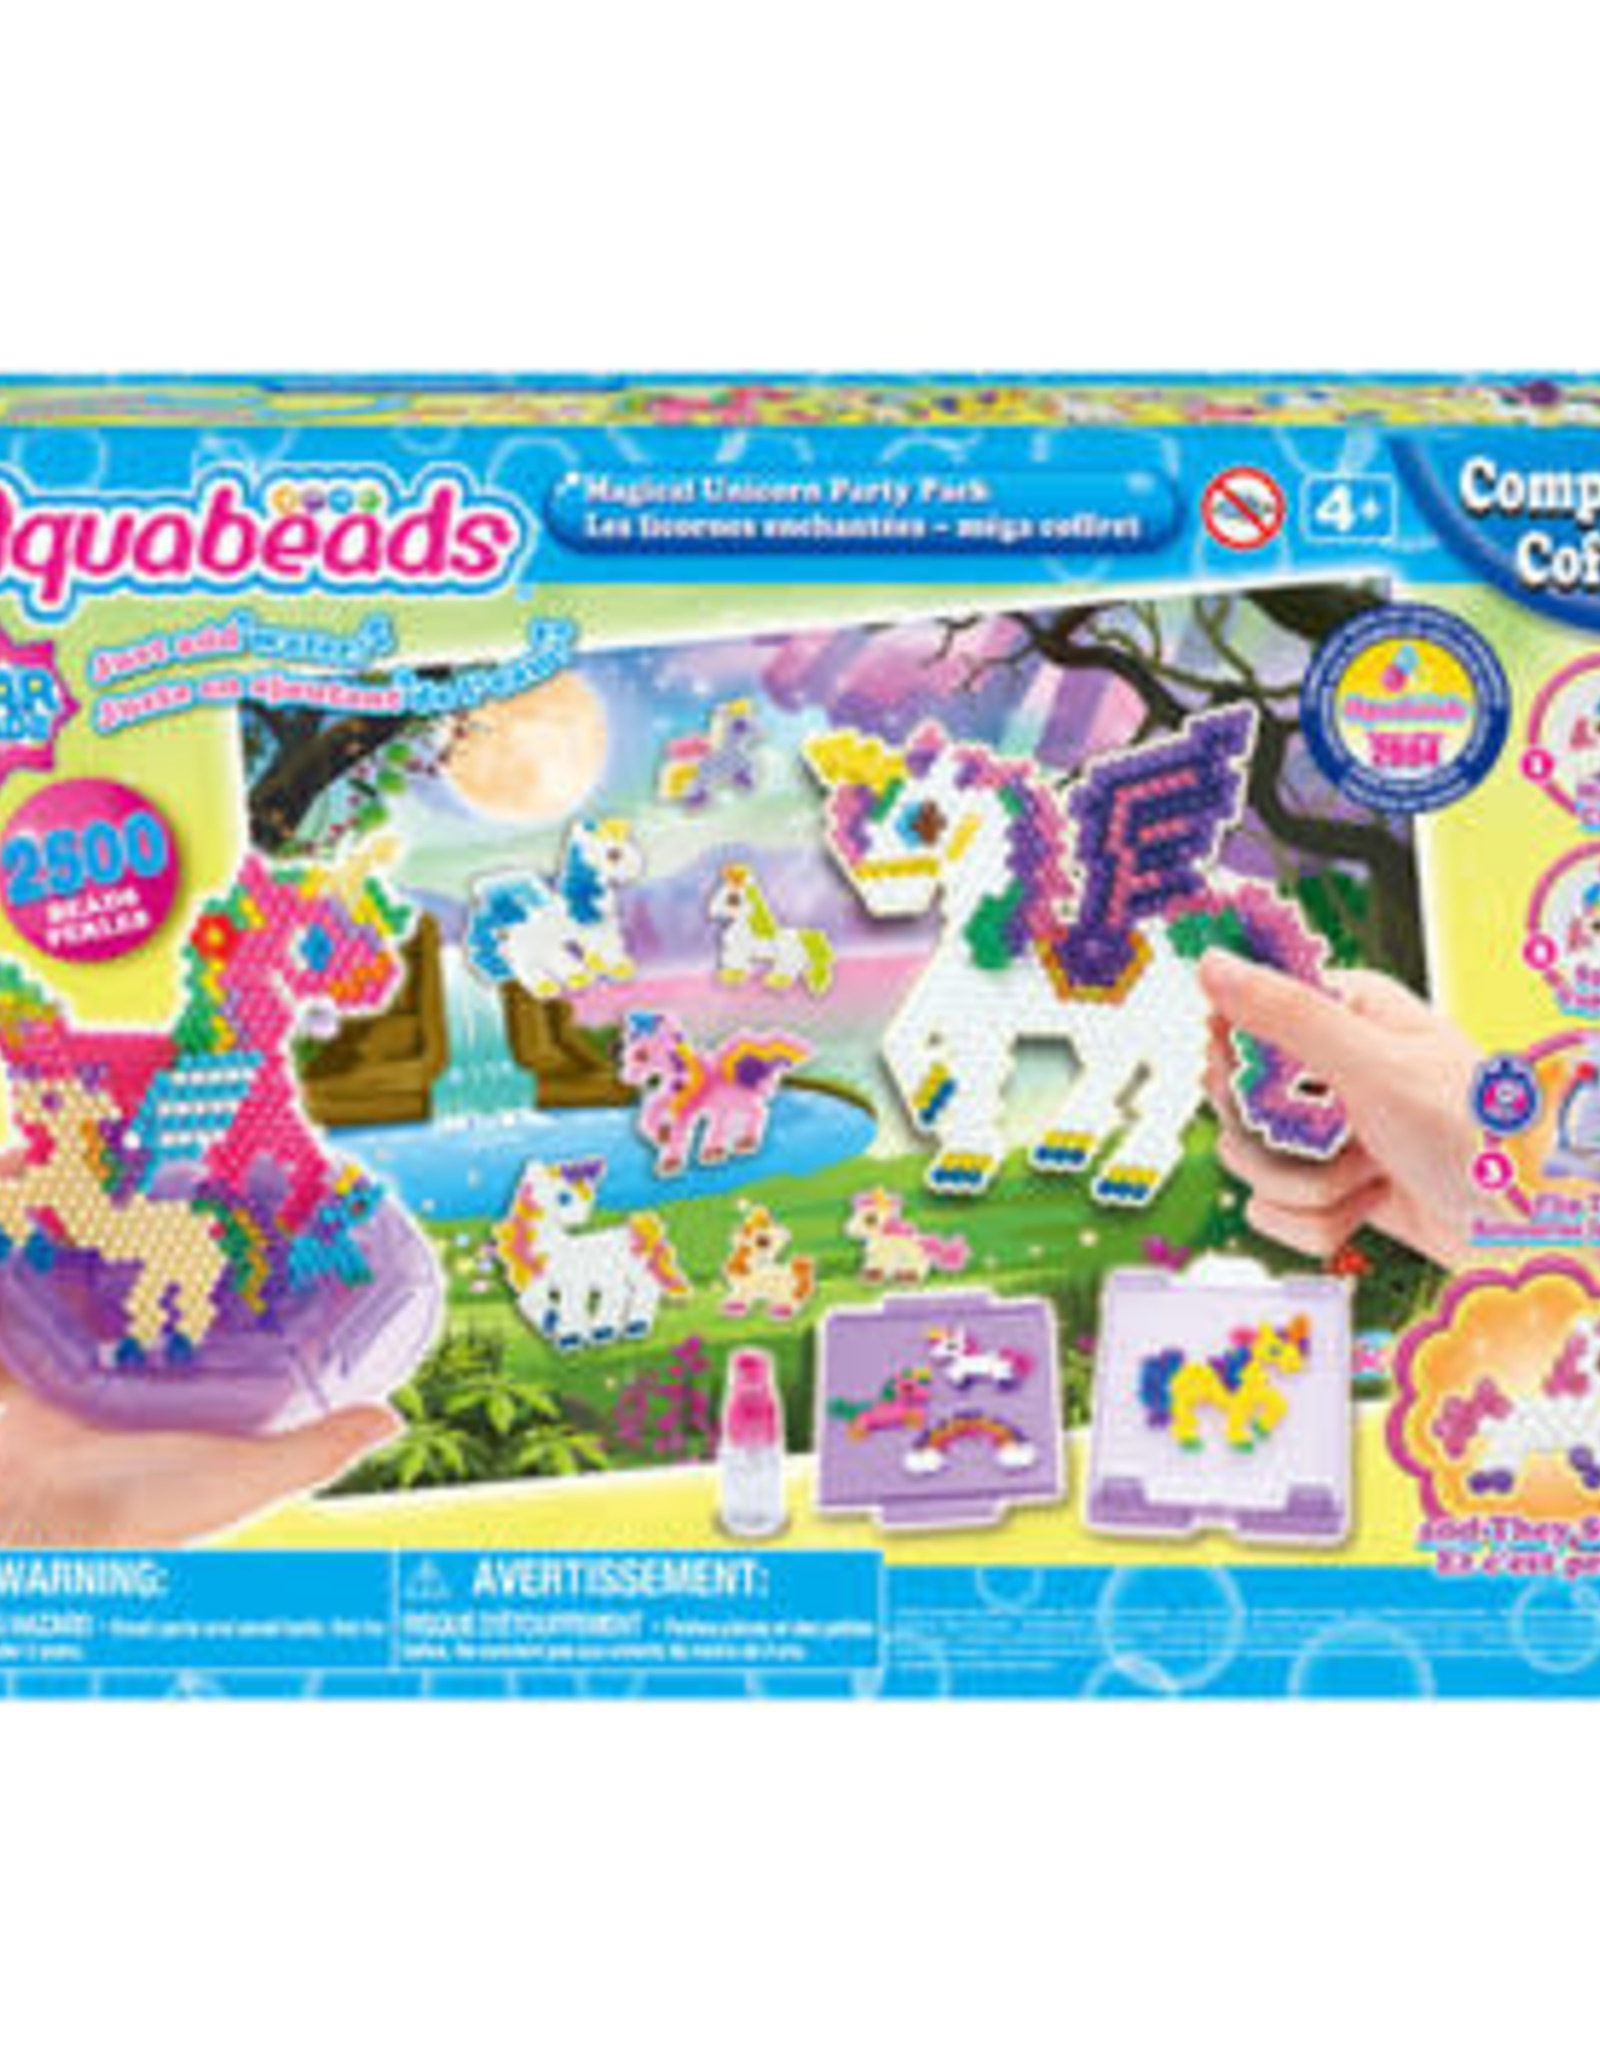 Aquabeads Magical Unicorn Party Pack